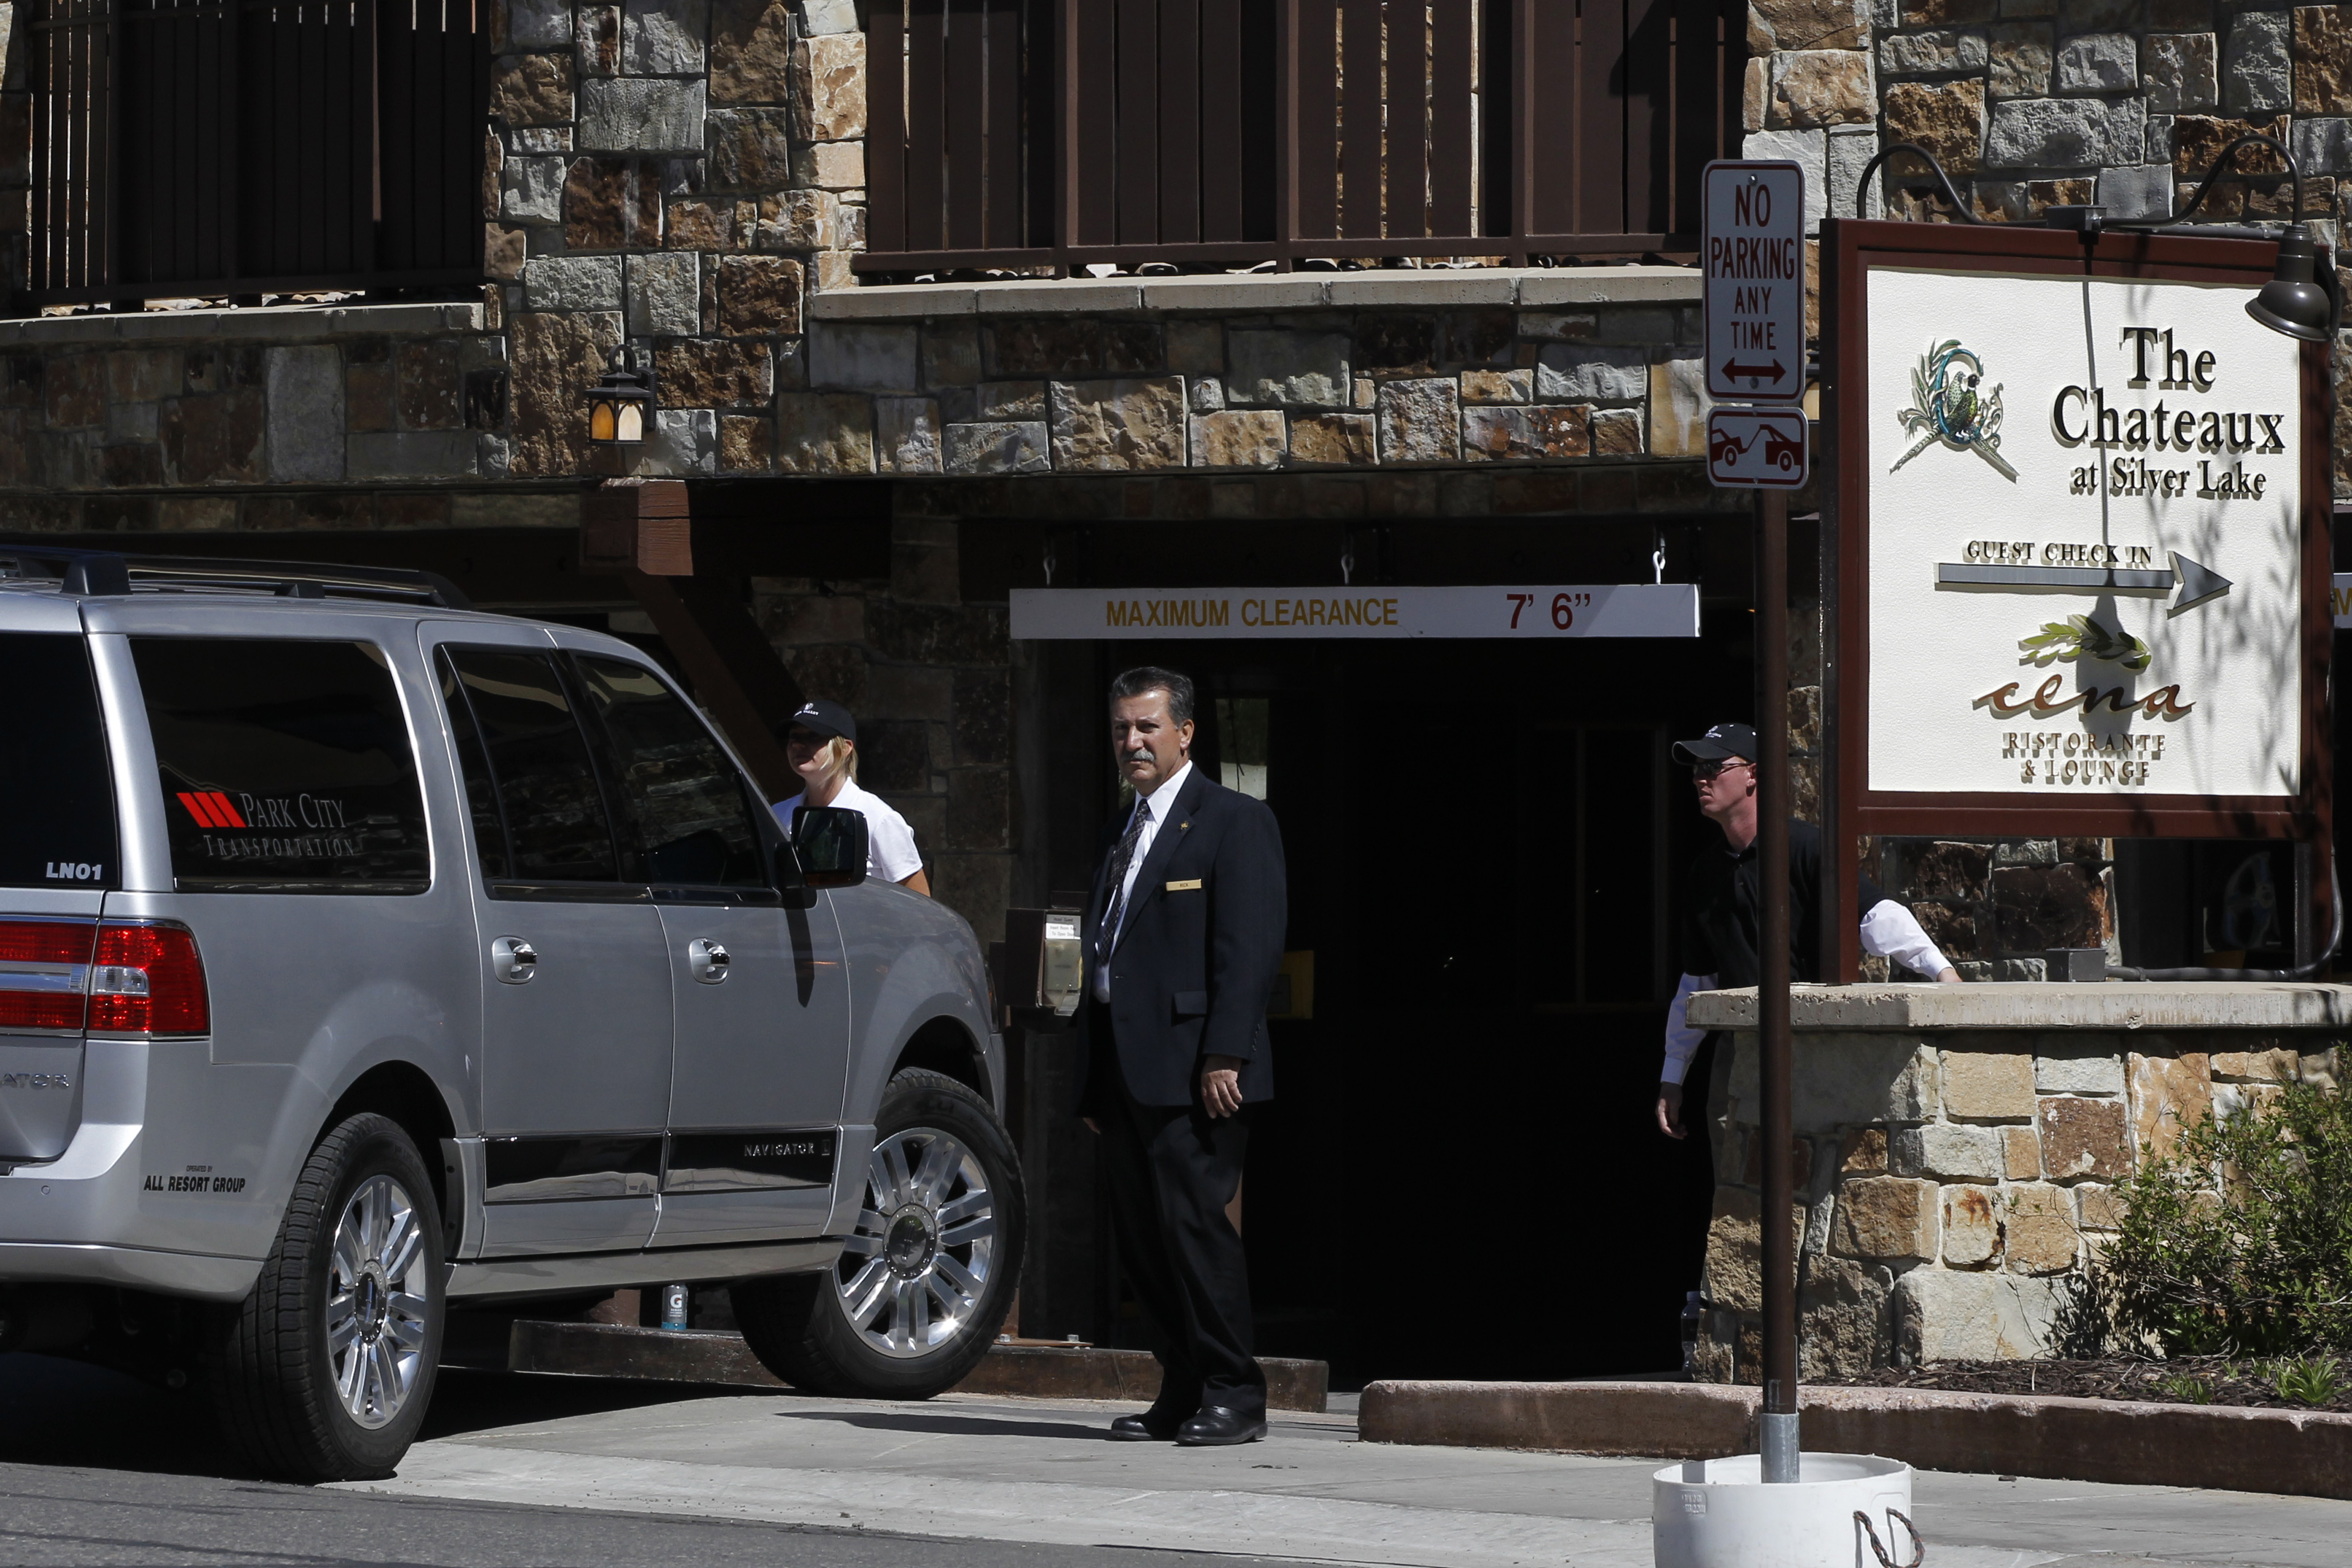 Security officials stand watch as cars enter a garage at a private 2012 donors' conference for Republican presidential candidate Mitt Romney at The Chateaux at Silver Lake at Deer Valley Resort in Park City, Utah.